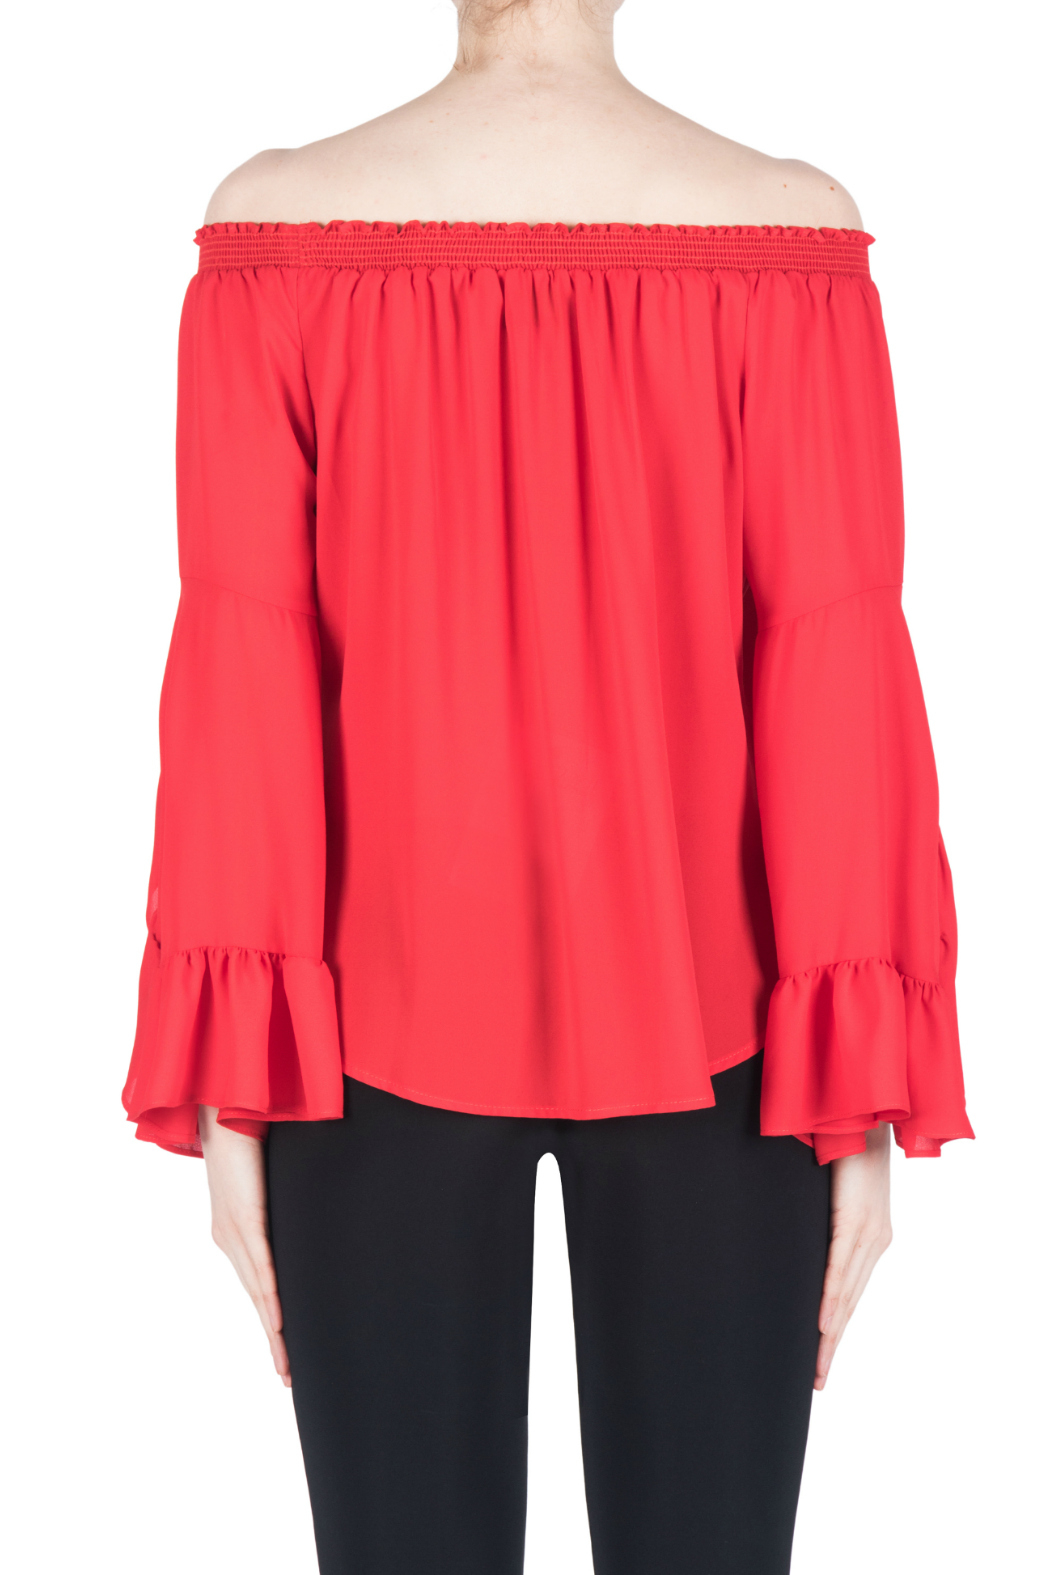 Joseph Ribkoff Red Flutter Sleeve Blouse - Side Cropped Image